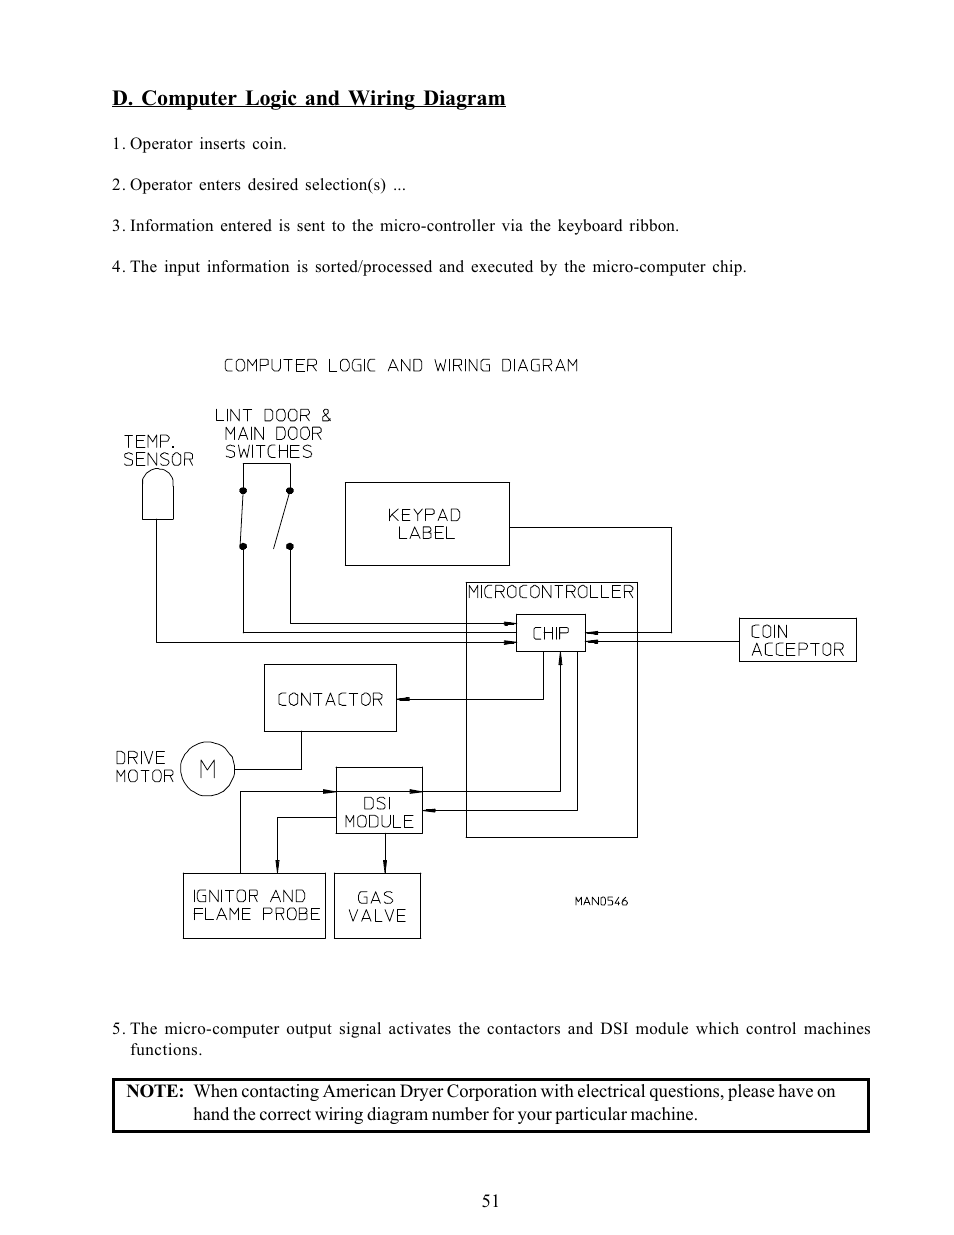 D Computer Logic And Wiring Diagram American Dryer Corp Adg 385 Keyboard User Manual Page 55 57